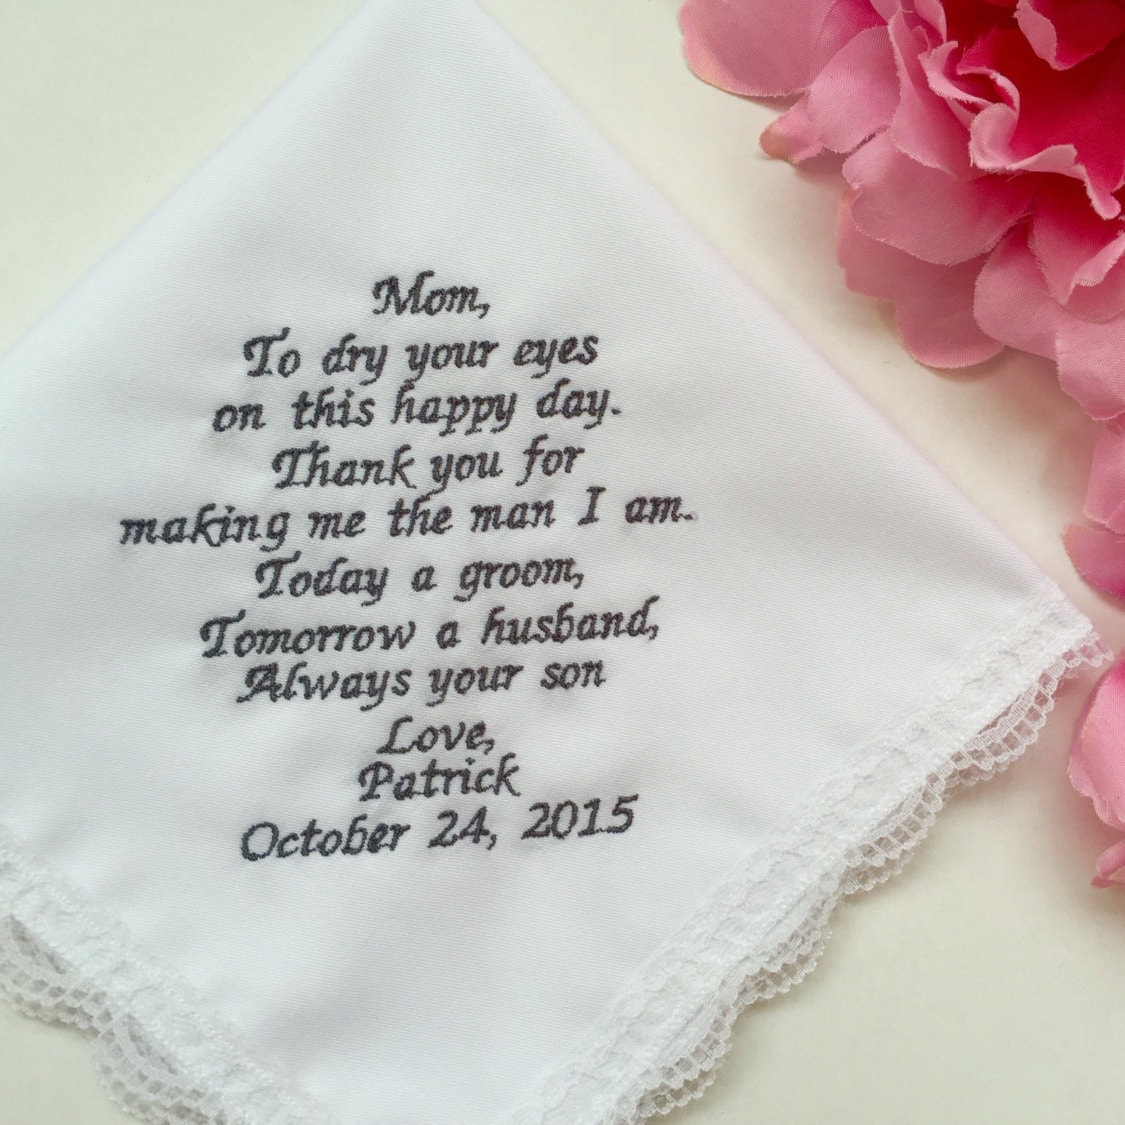 Wedding Gift From Groom To Mother Groom/Personalized Wedding